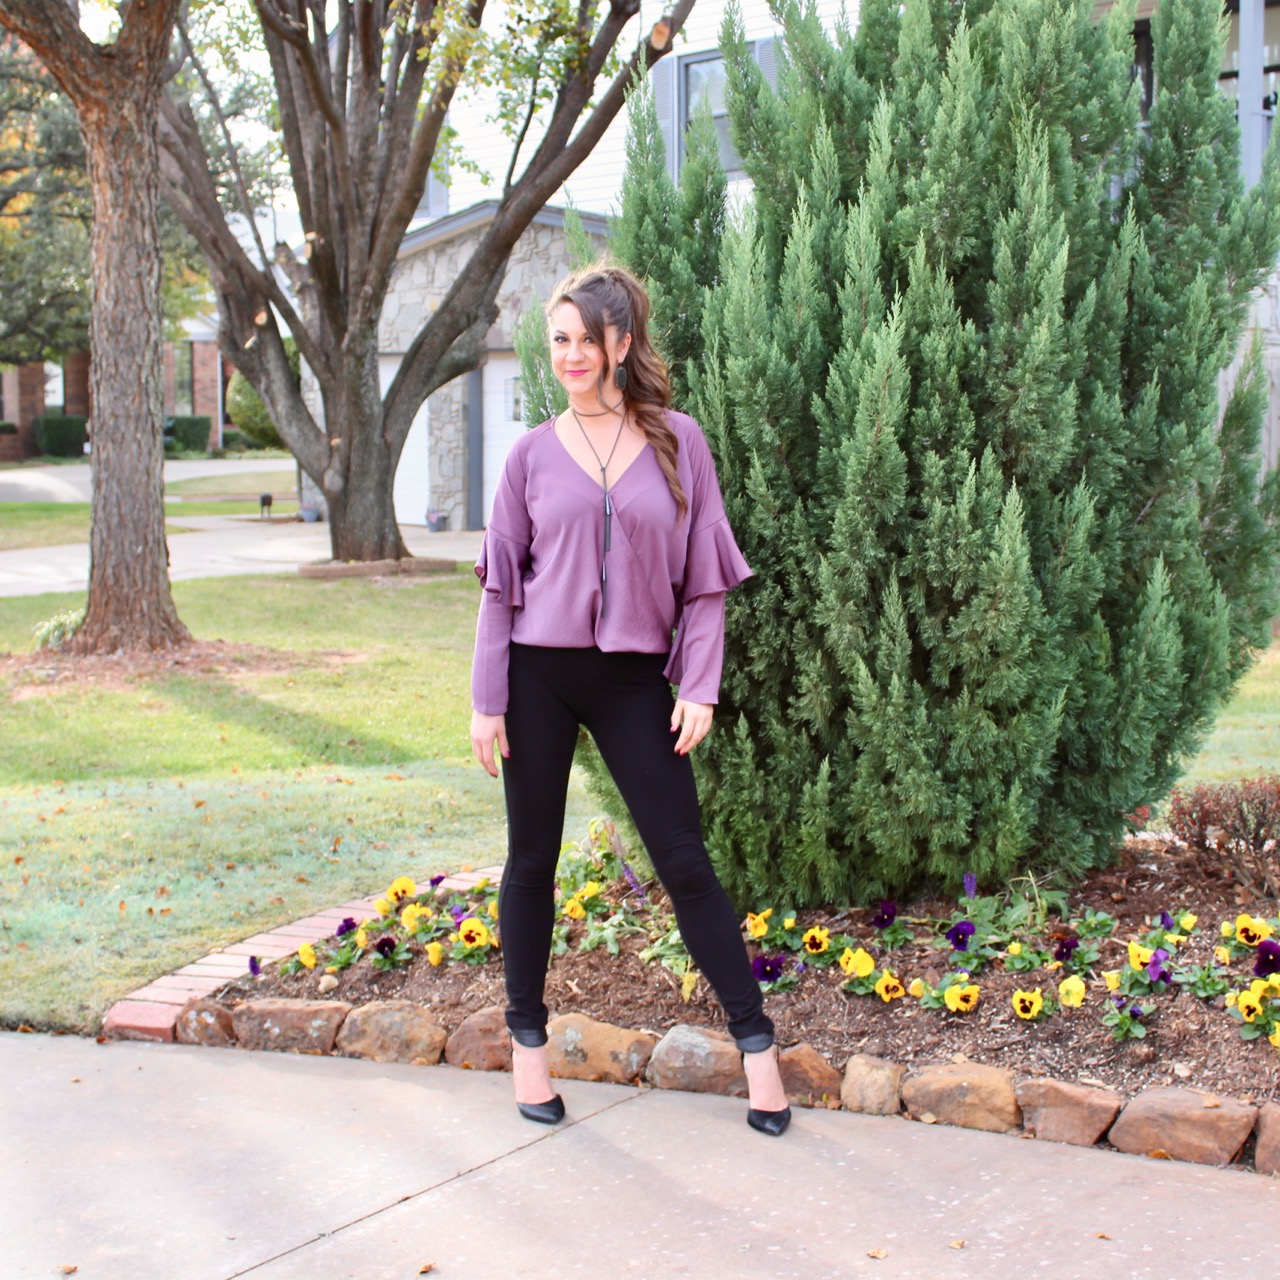 Daily Instagram Post: Everyone needs a little purple in their life! My daughter Haley is wearing this darling ruffle top perfect for holiday get togethers!